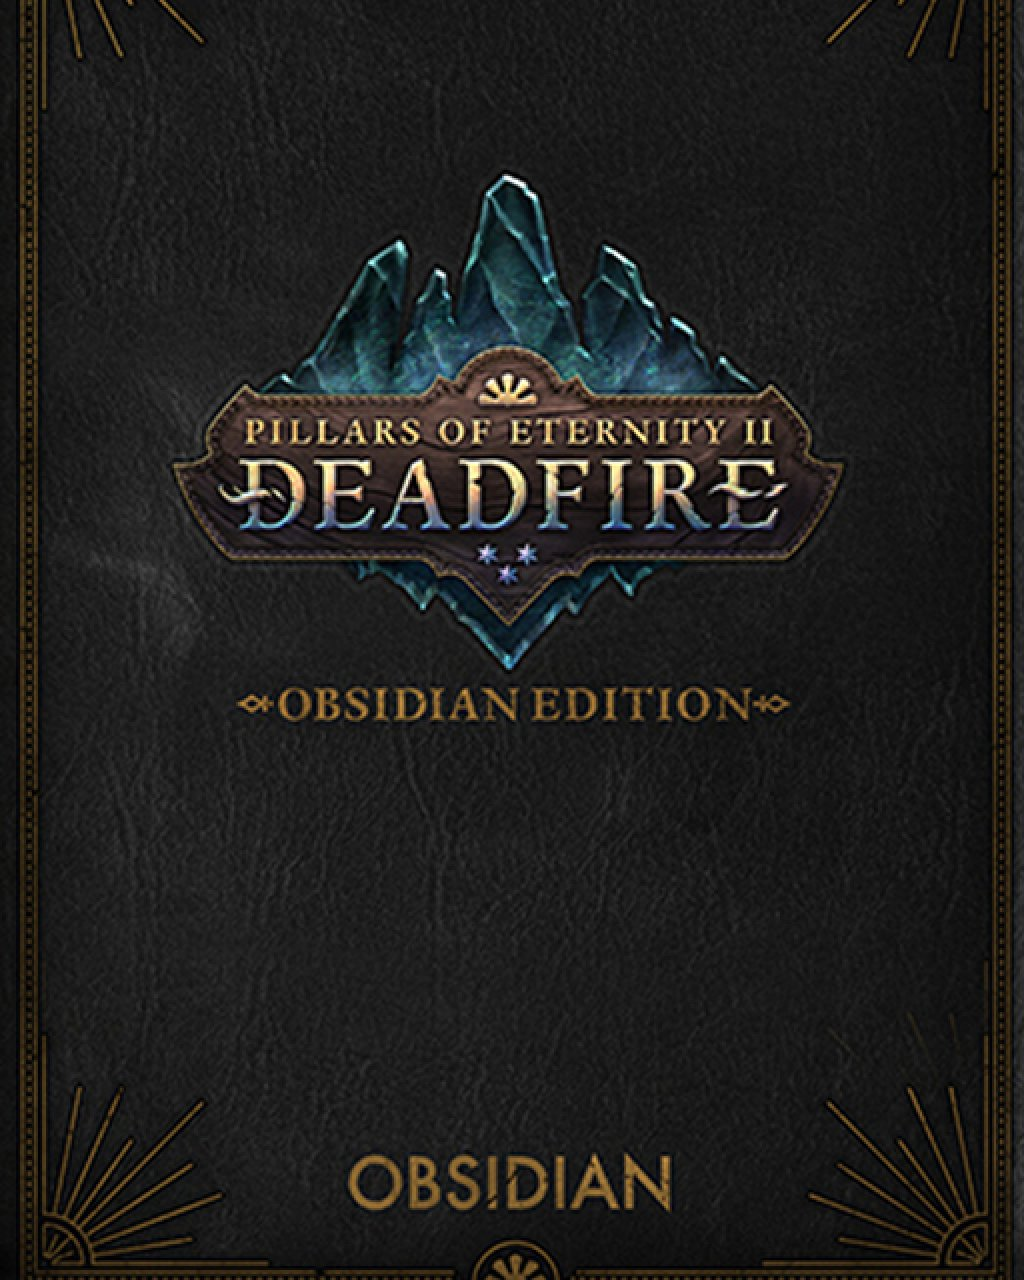 Pillars of Eternity 2 Deadfire Obsidian Edition